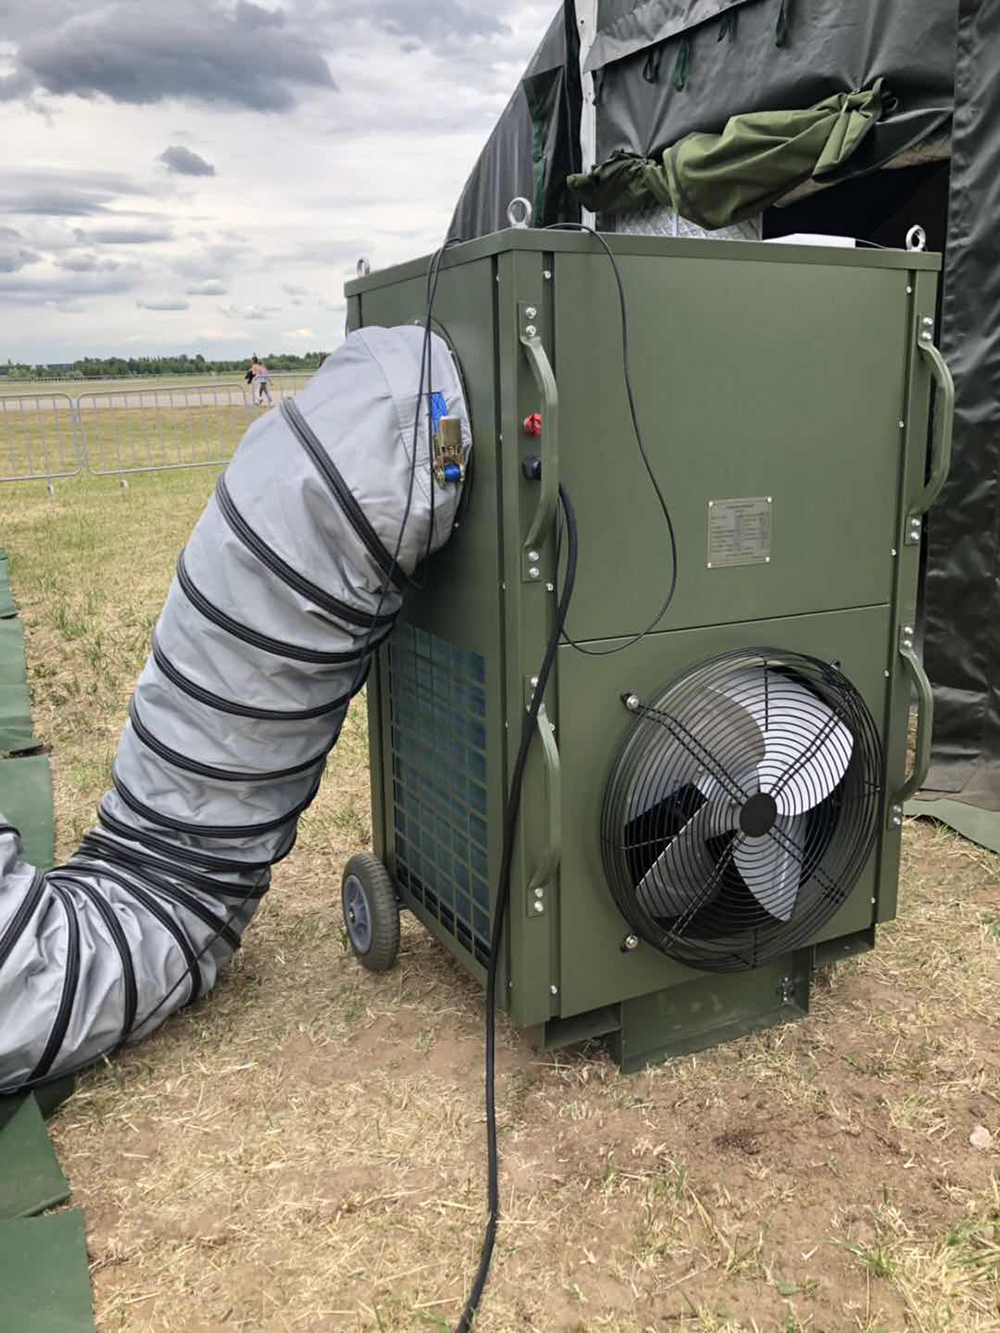 Air Conditioner for Medical Tent